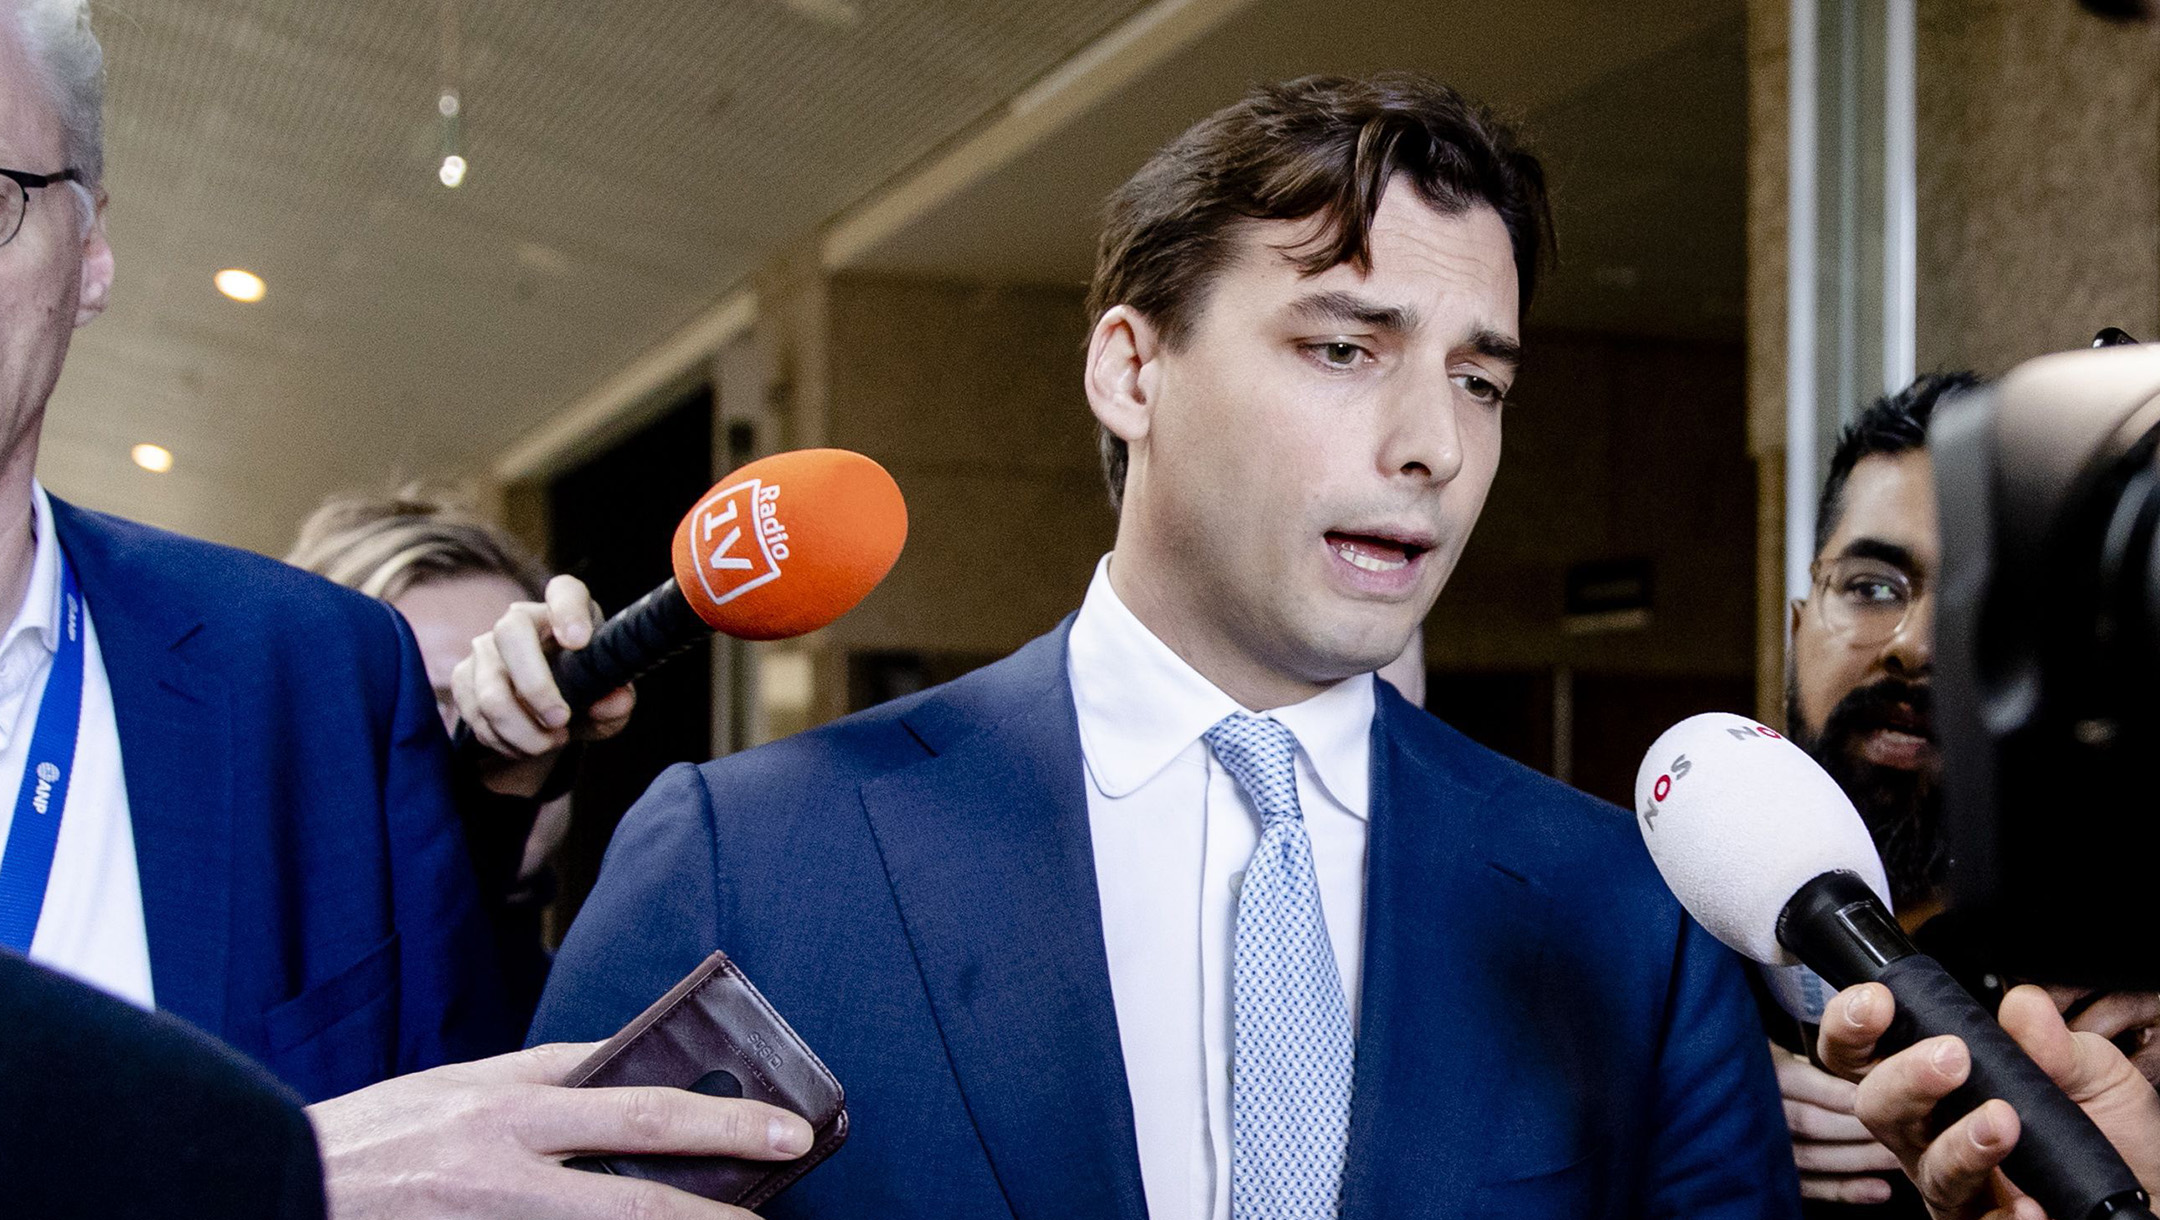 Dutch right-wing politician calls Nuremberg trials 'illegitimate'